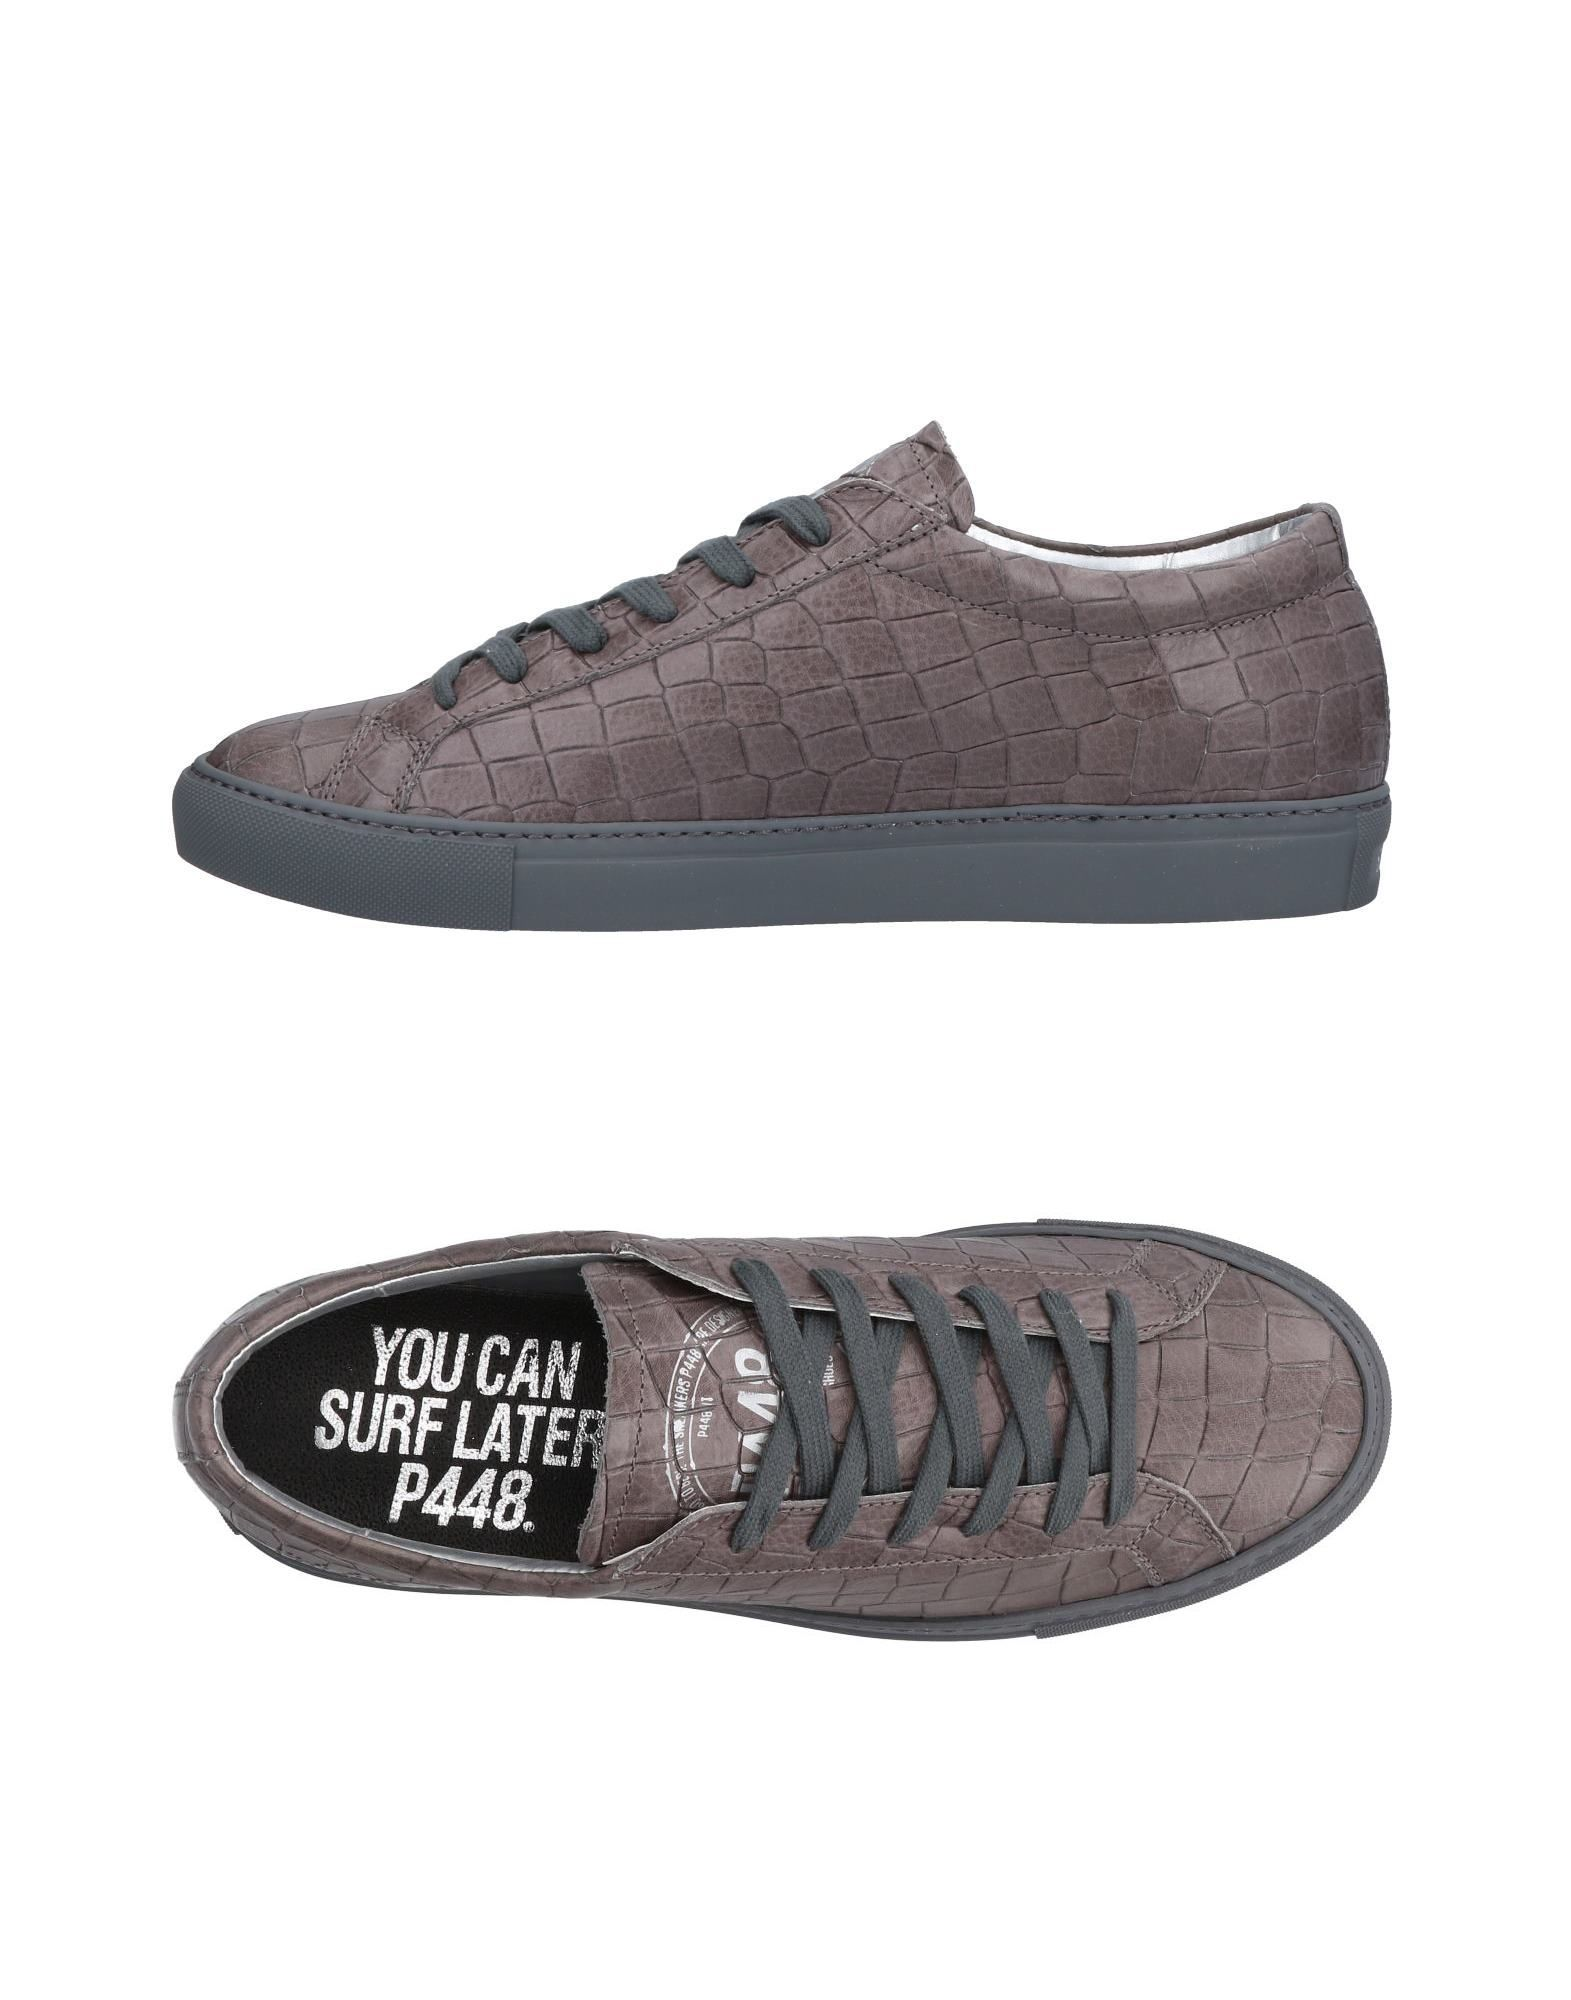 P448 Sneakers Sneakers Sneakers - Men P448 Sneakers online on  United Kingdom - 11457232JI 0cd3b2